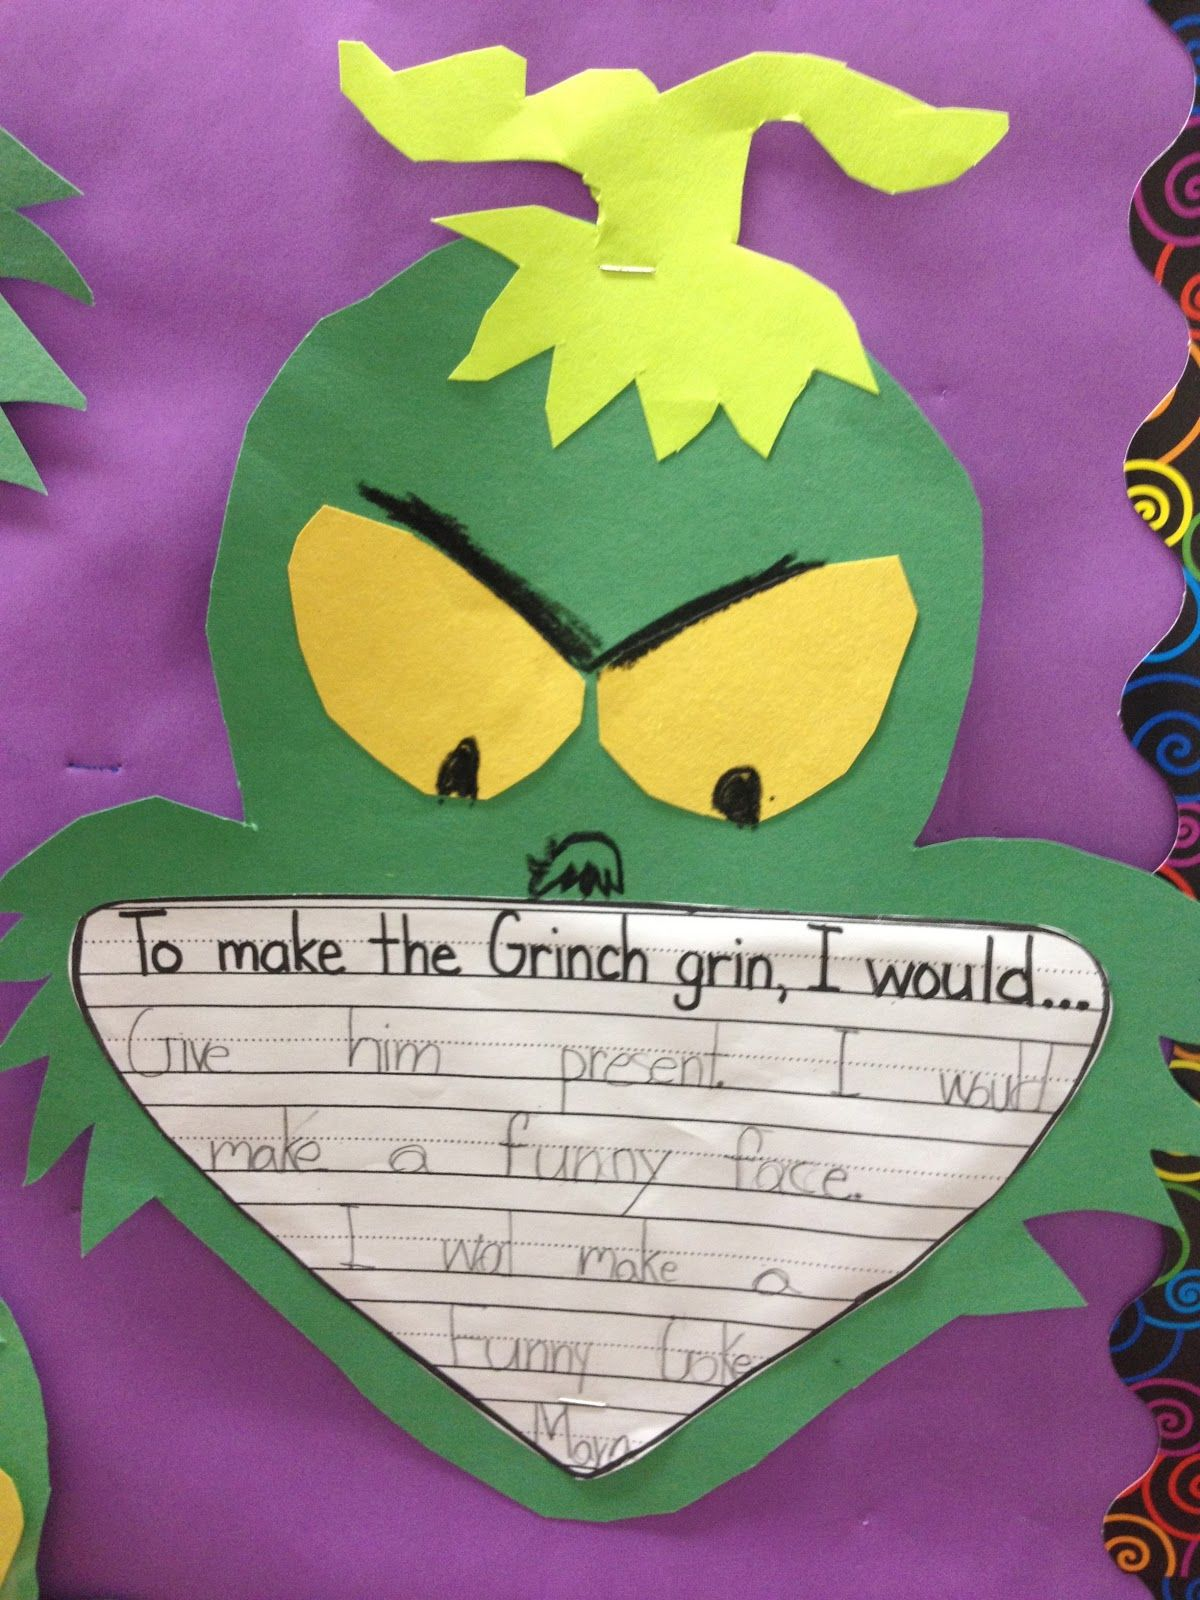 Grinch Day To Make The Grinch Grin